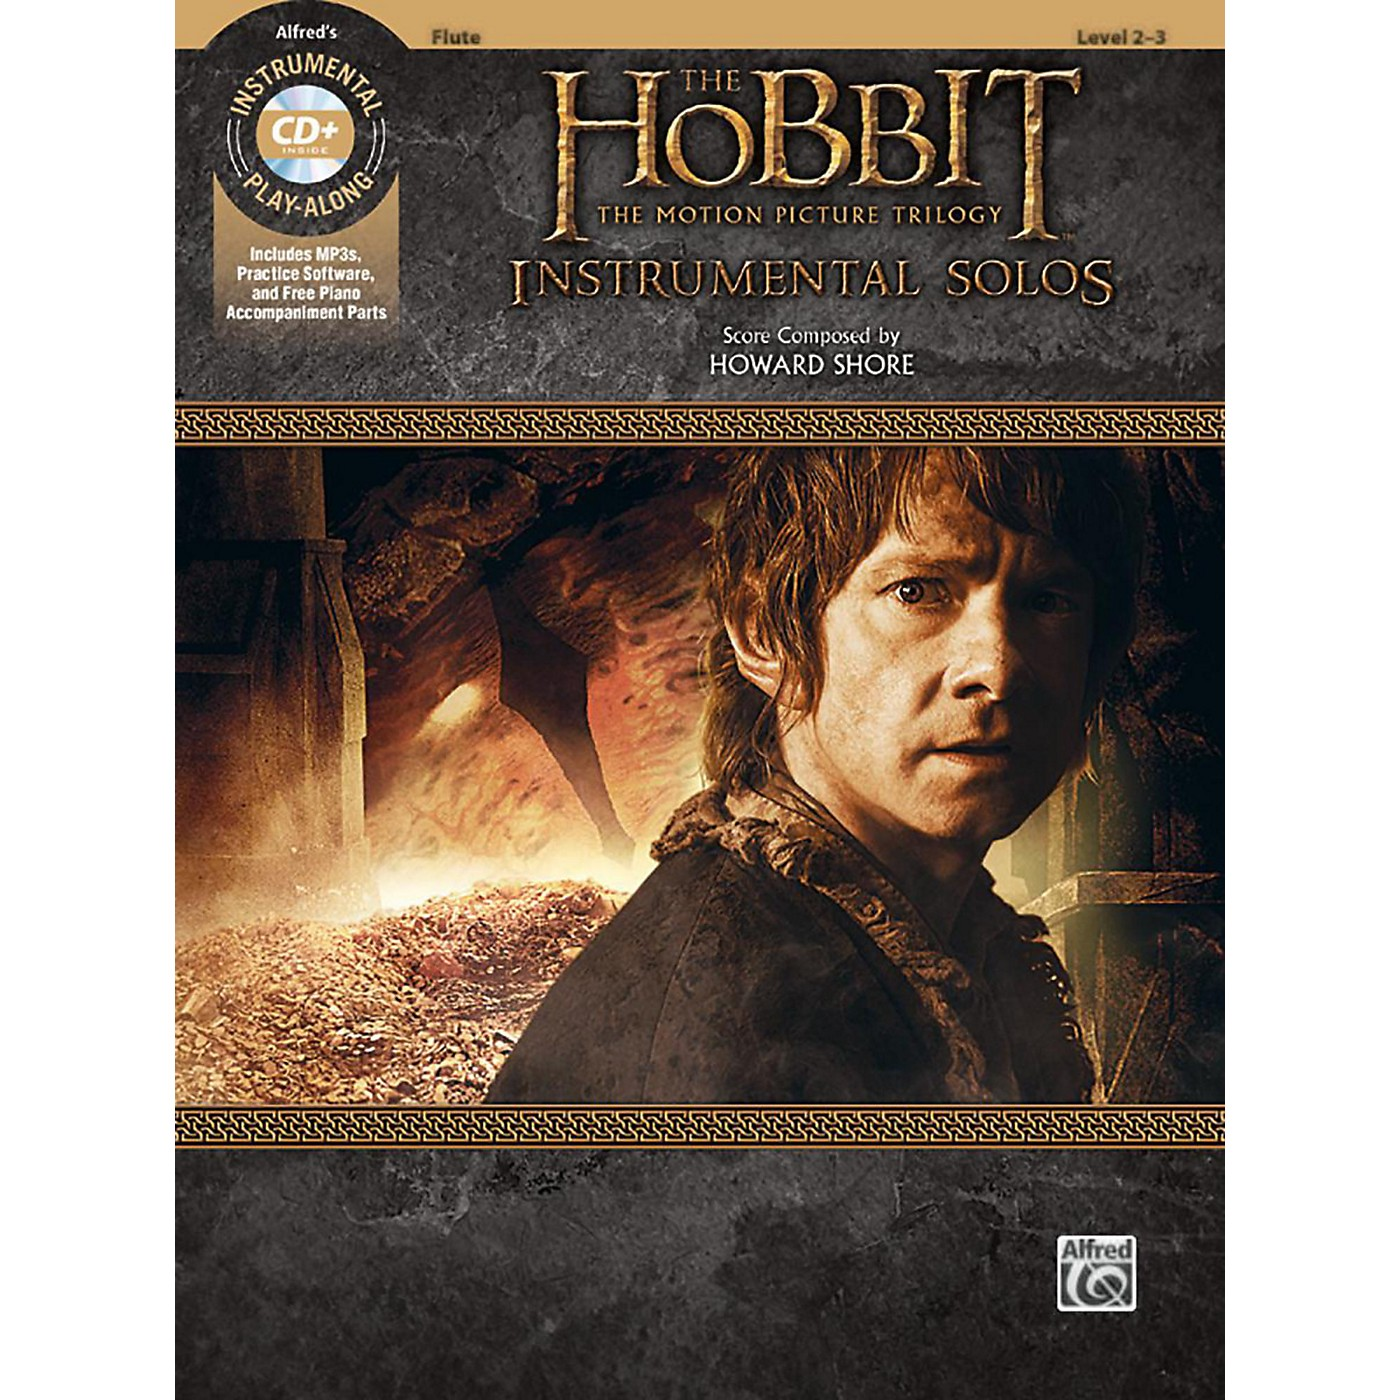 Alfred The Hobbit - The Motion Picture Trilogy Instrumental Solos Flute Book & CD Level 2-3 Songbook thumbnail